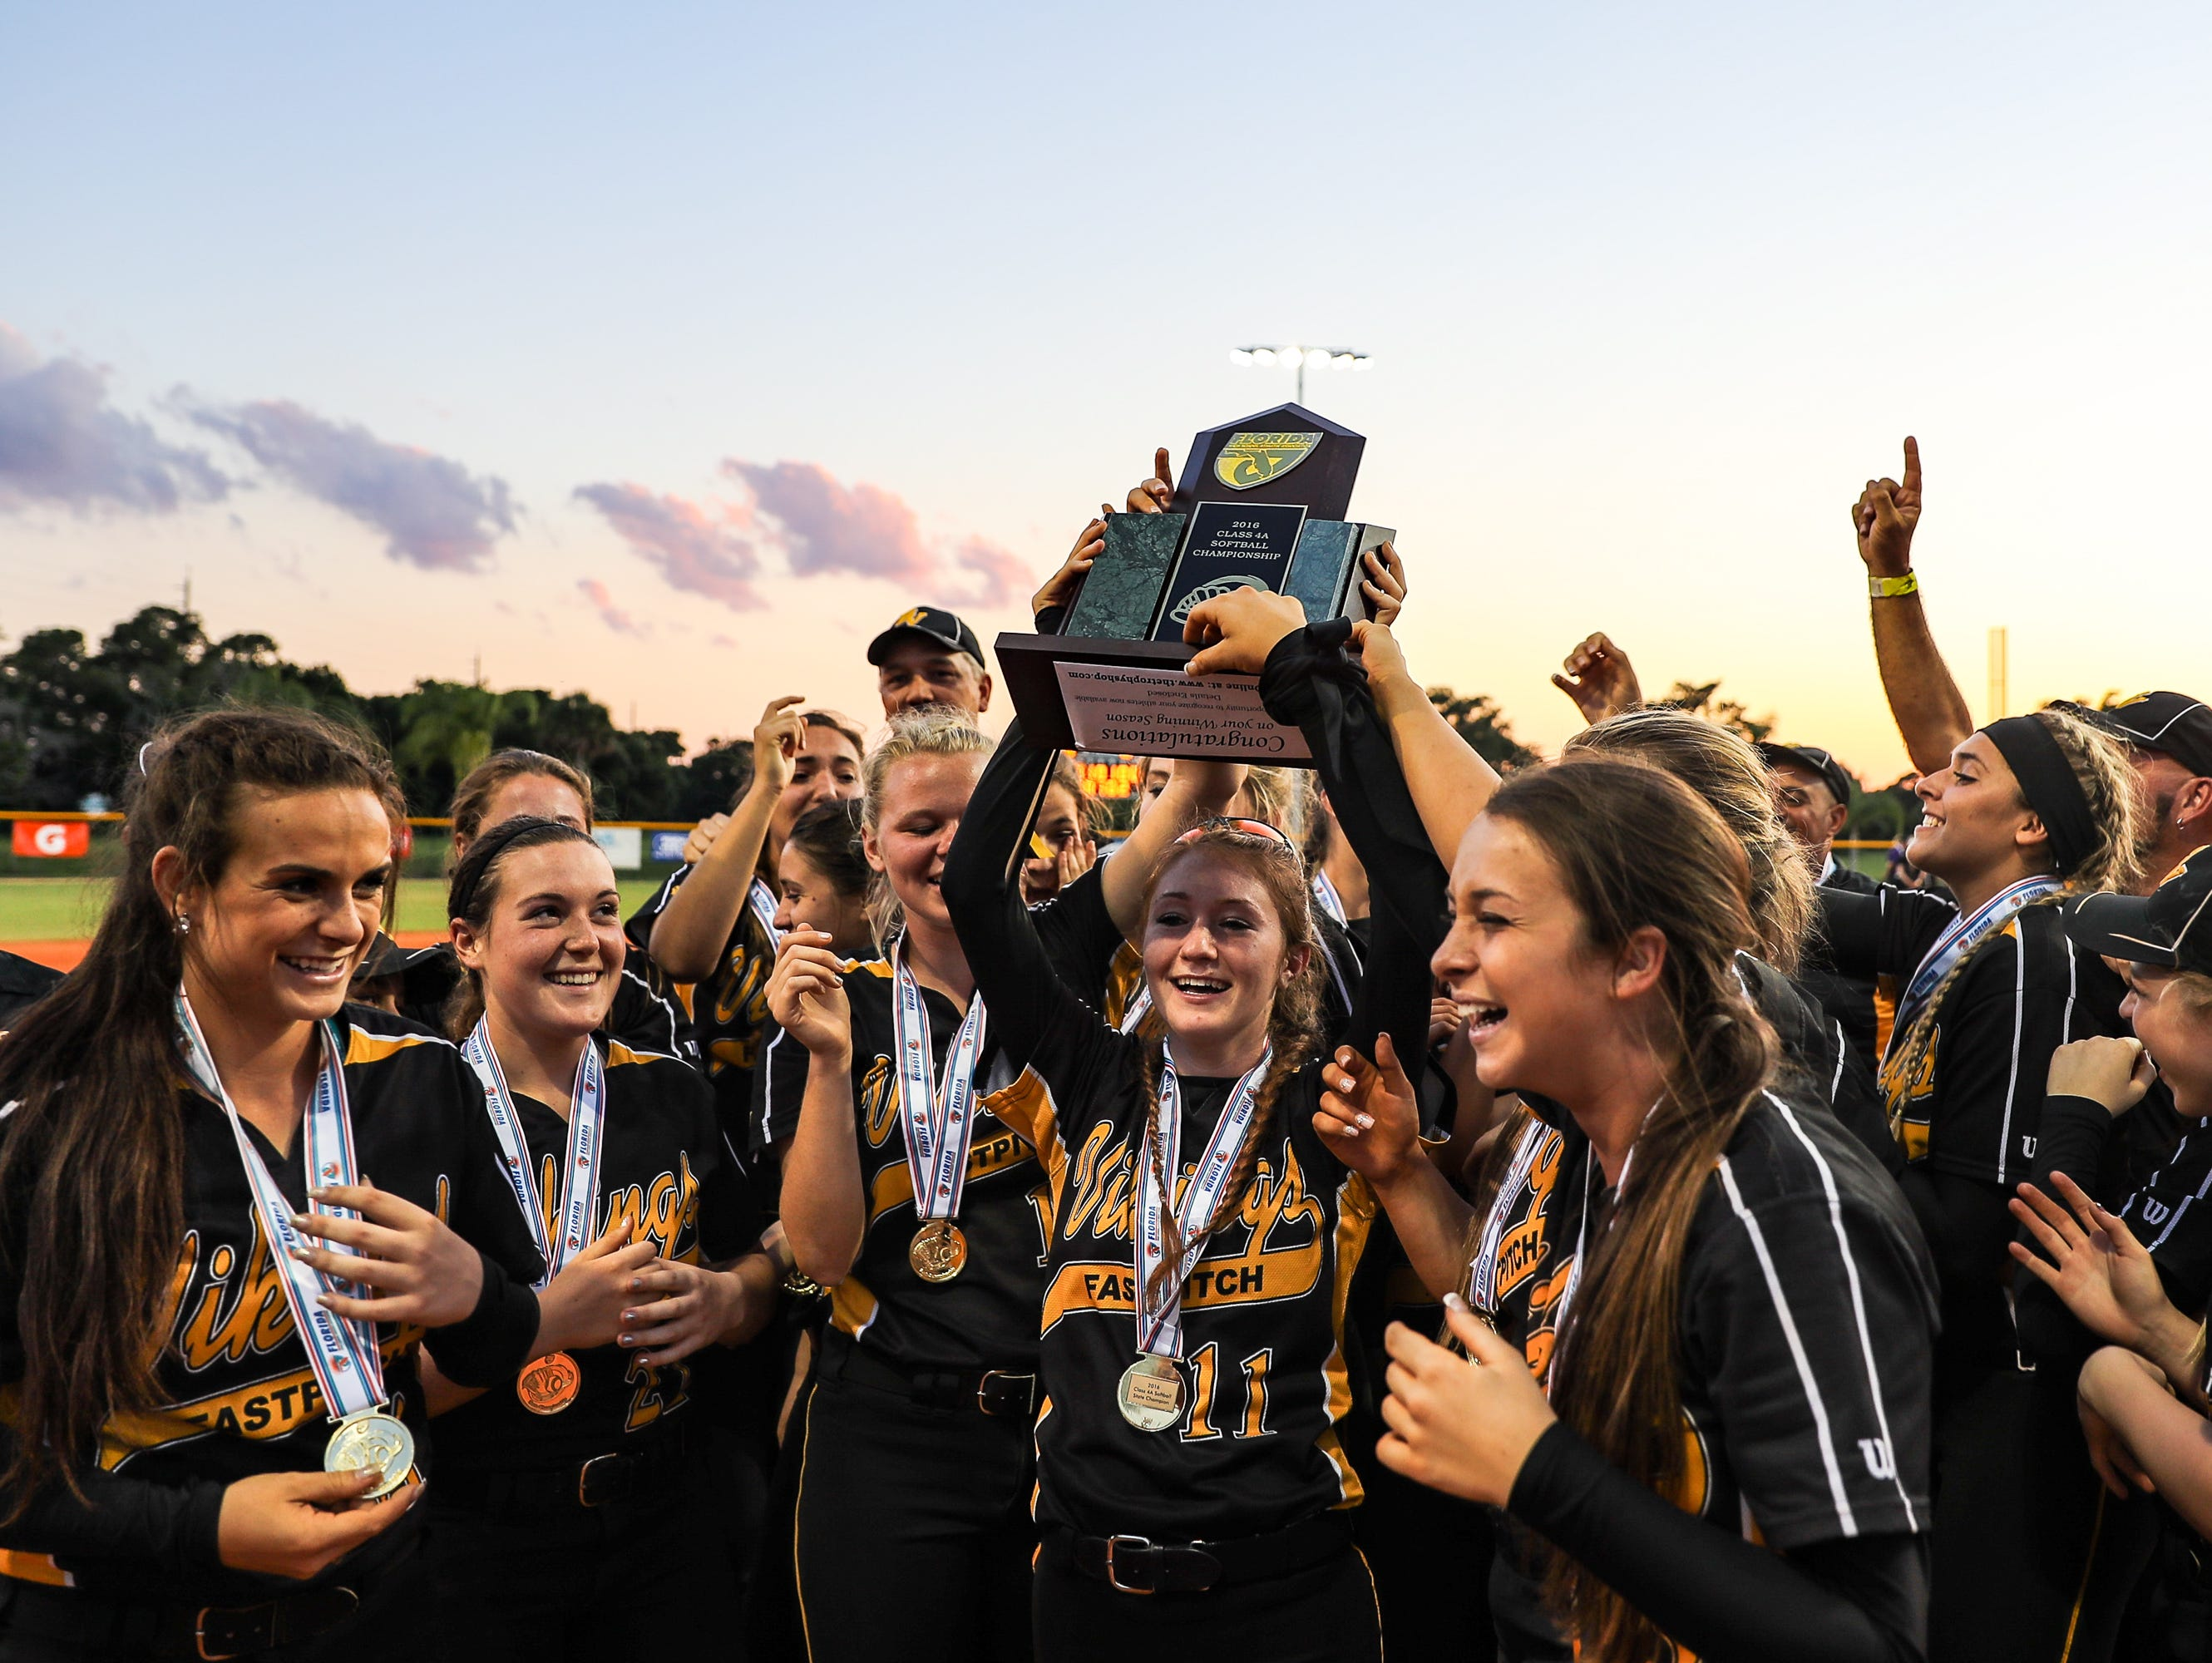 Bishop Verot celebrates their win over Montverde Academy at the FHSAA Class 4A State championship game played at Historic Dodgertown in Vero Beach, FL, on Thursday, May 5, 2016. (J. PATRICK RICE / SPECIAL TO THE NEWS-PRESS)